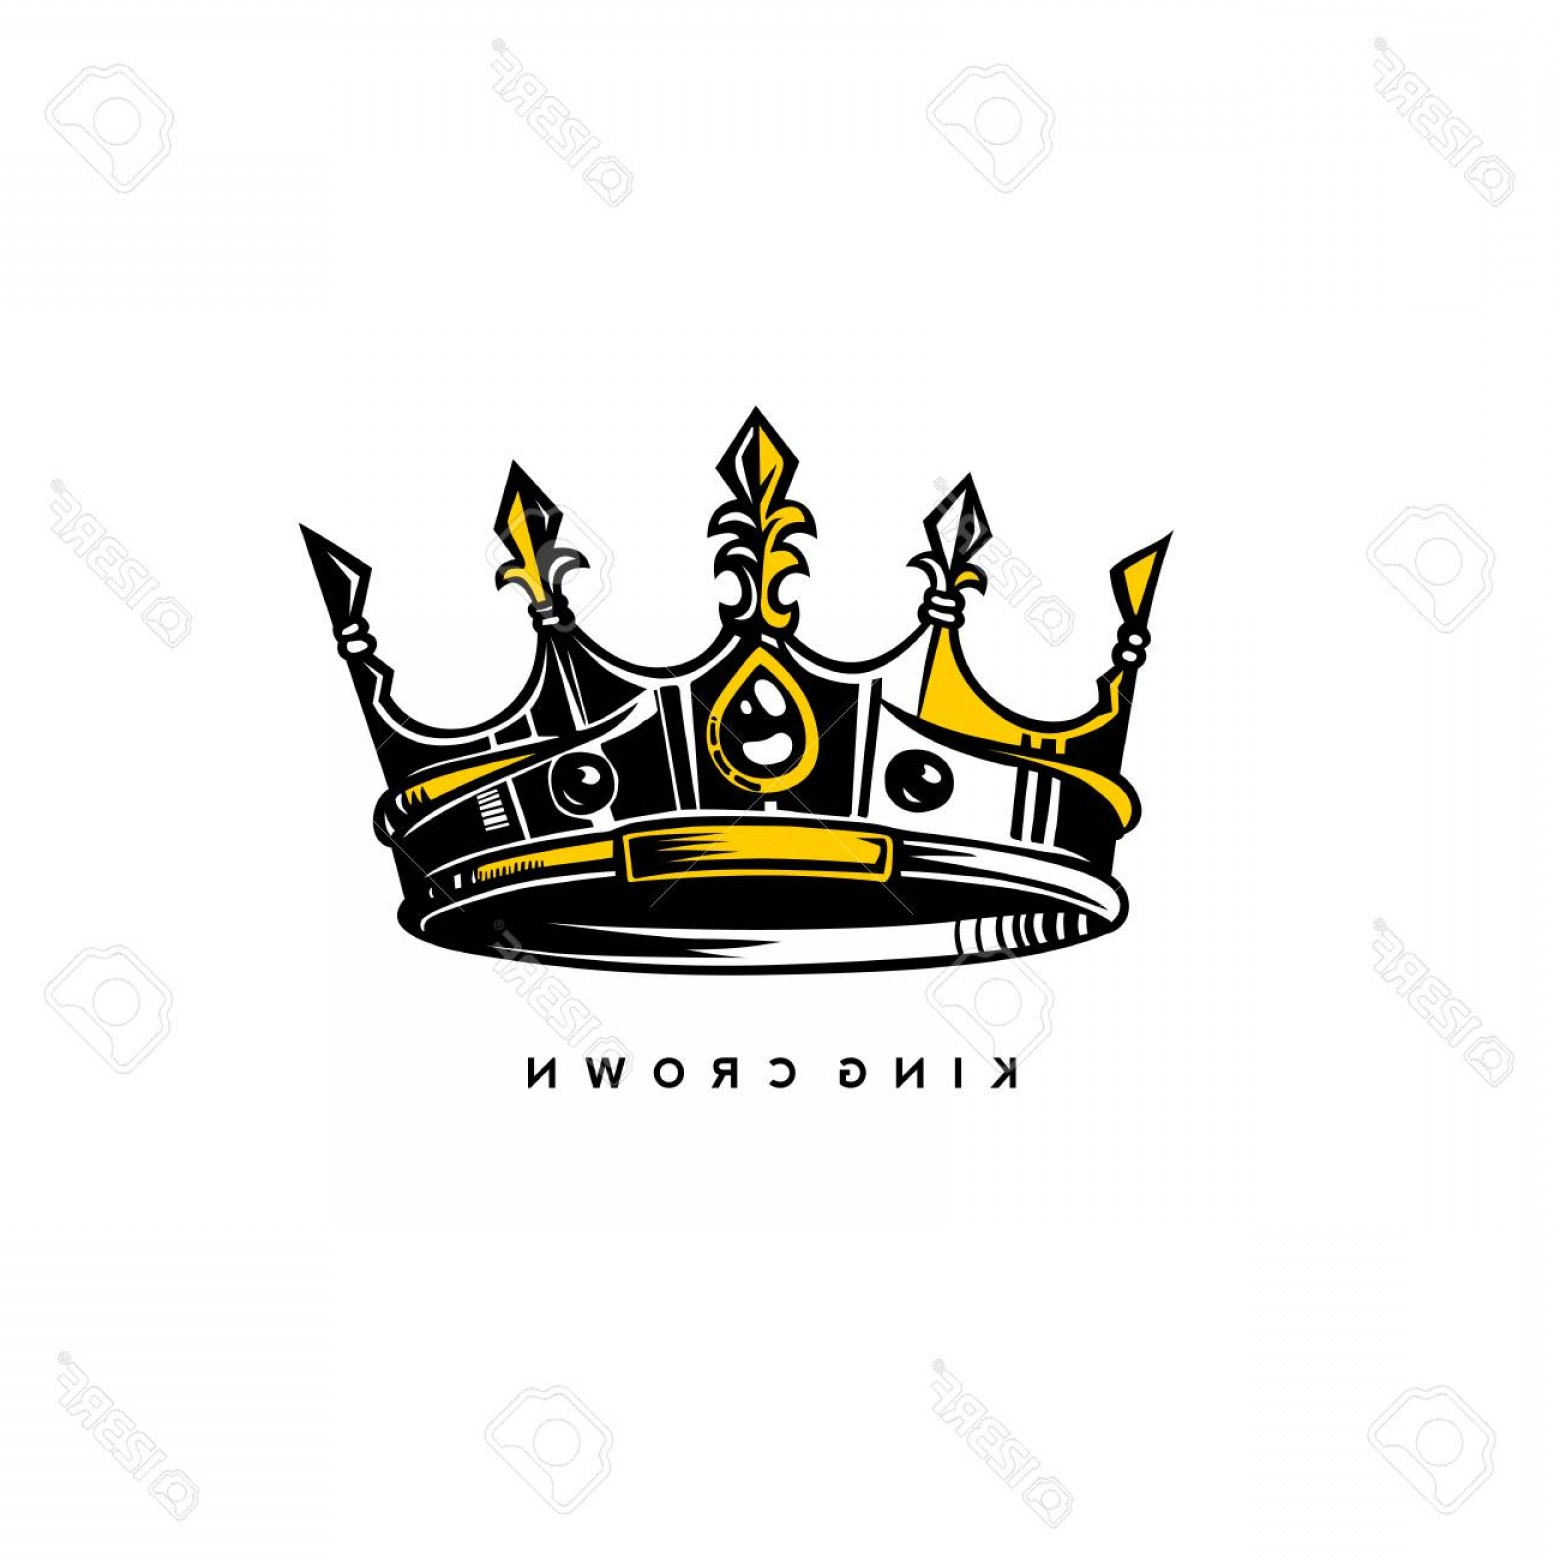 Silver Prince Vector: Photostock Vector Silver And Gold King Crown Logo On White Background With Typography Vector Illustration Design